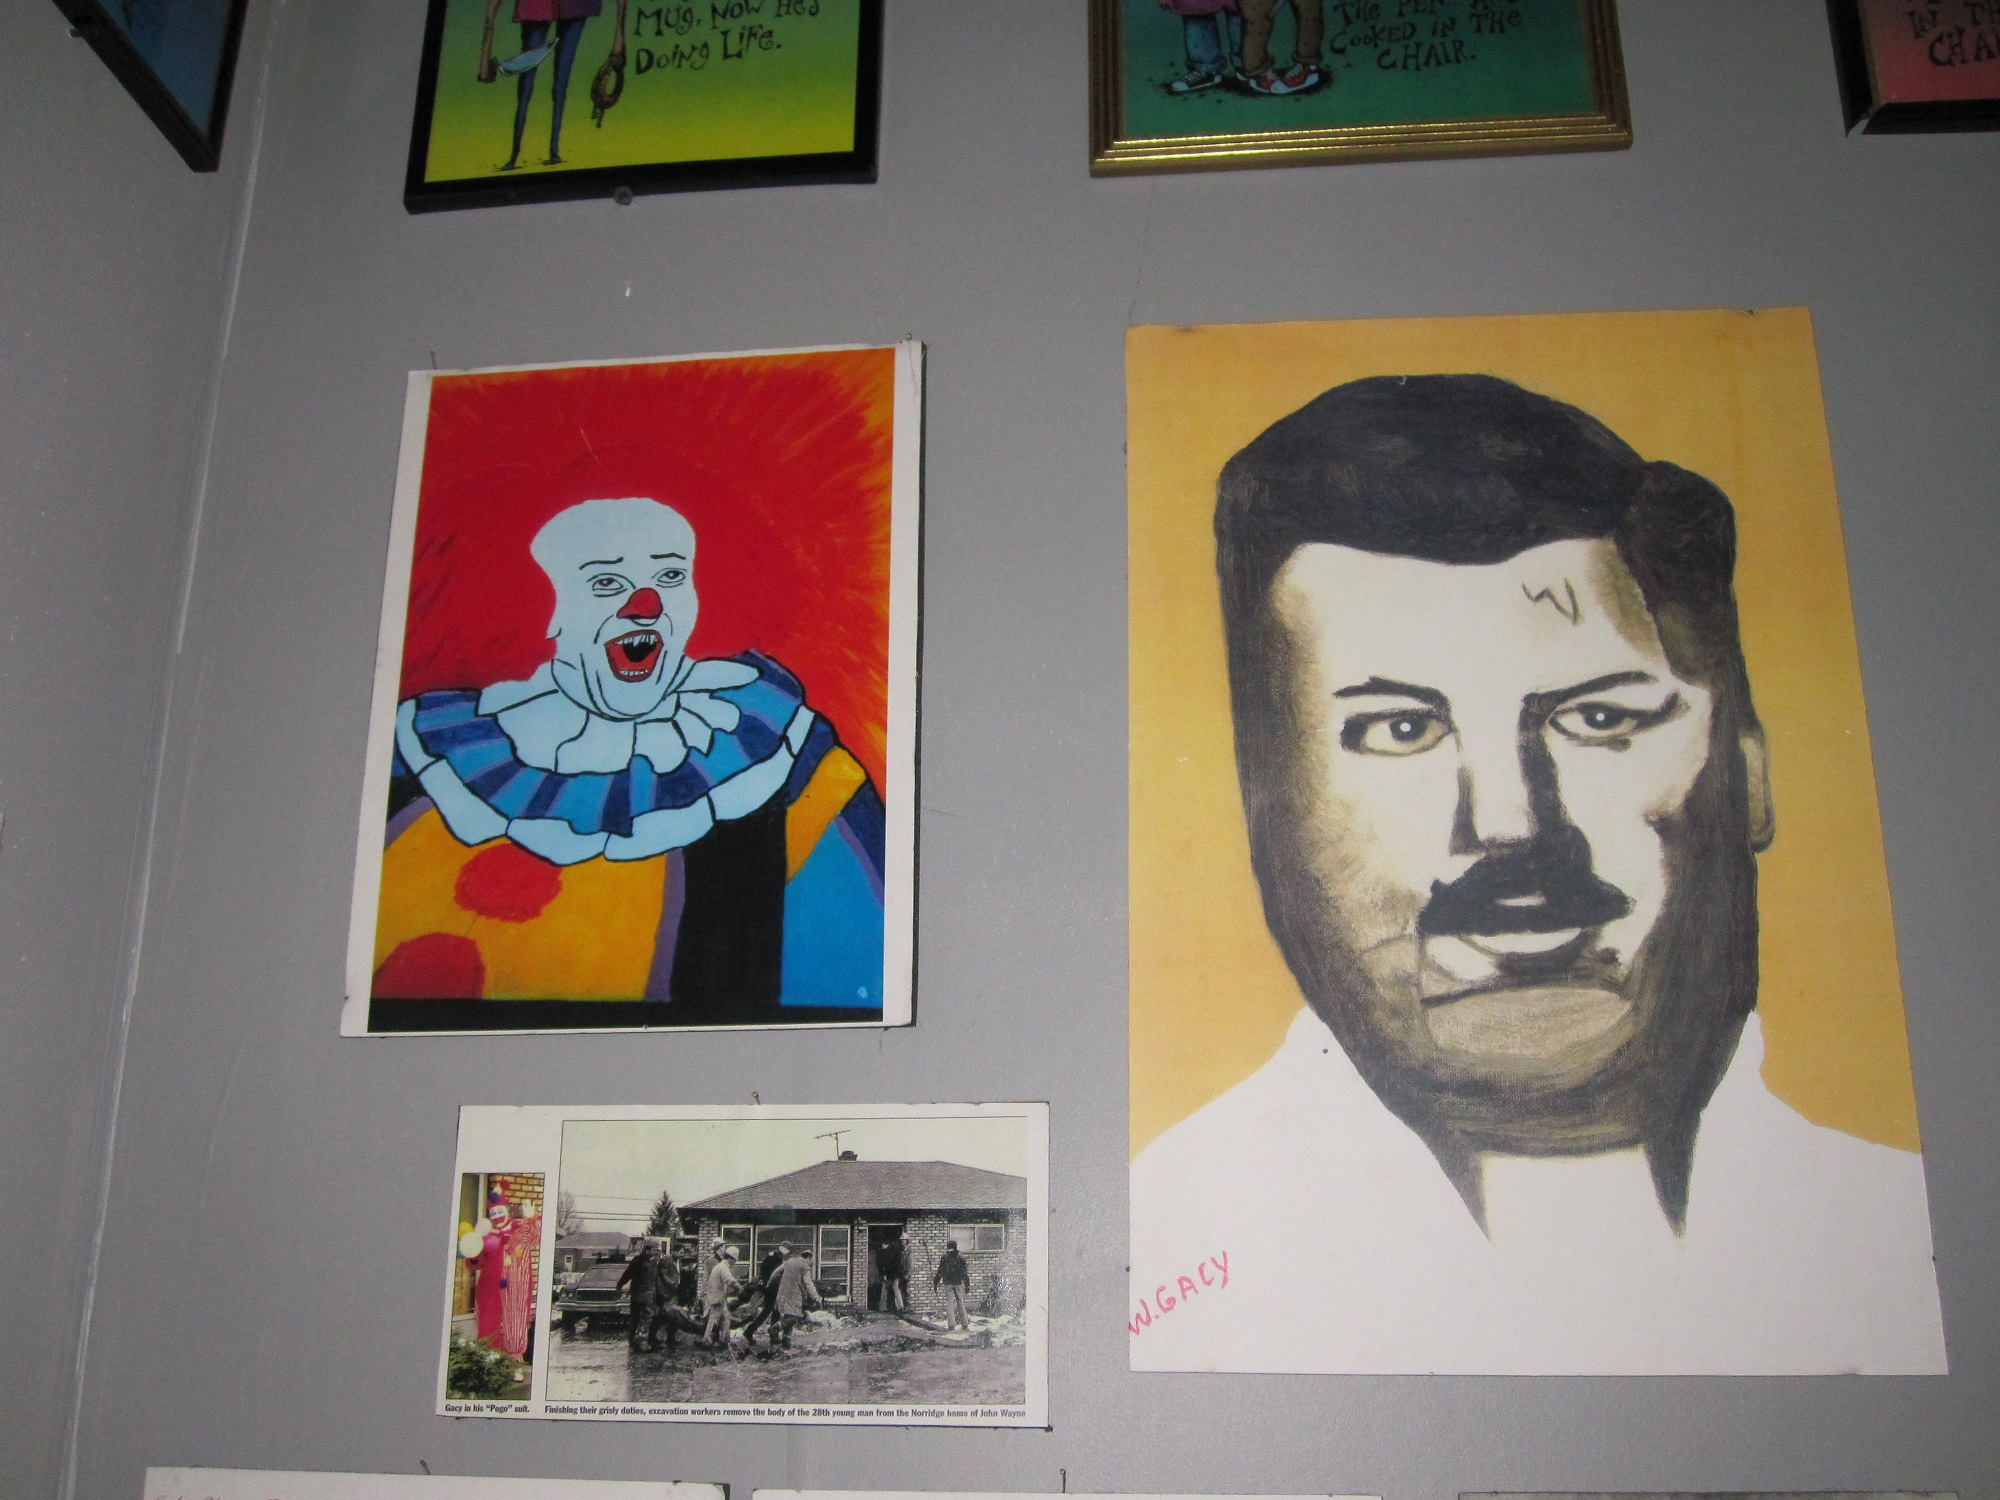 The controversy of killer john wayne gacy s artwork for Adolf biecker salon wayne